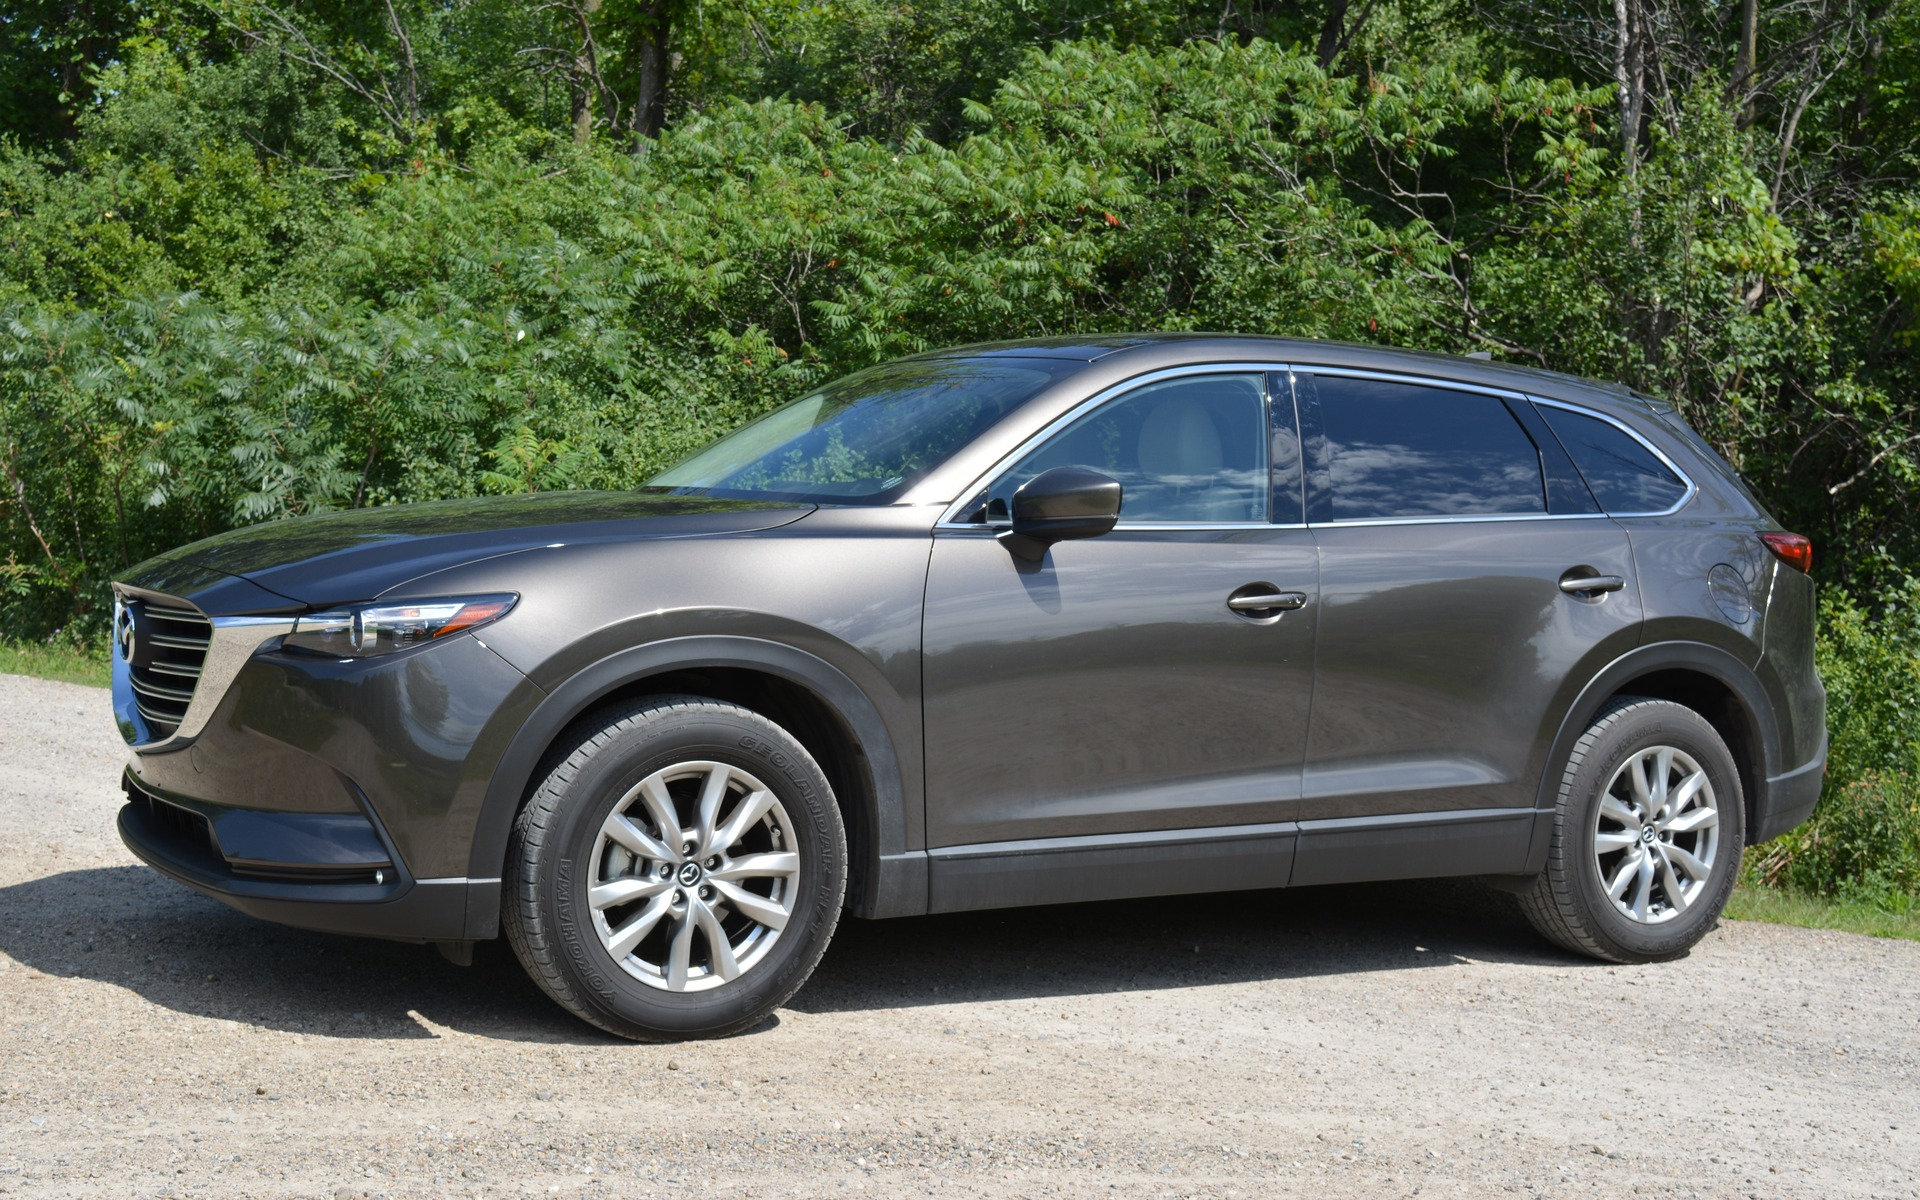 2016 mazda cx 9 gs l calculated risk the car guide. Black Bedroom Furniture Sets. Home Design Ideas